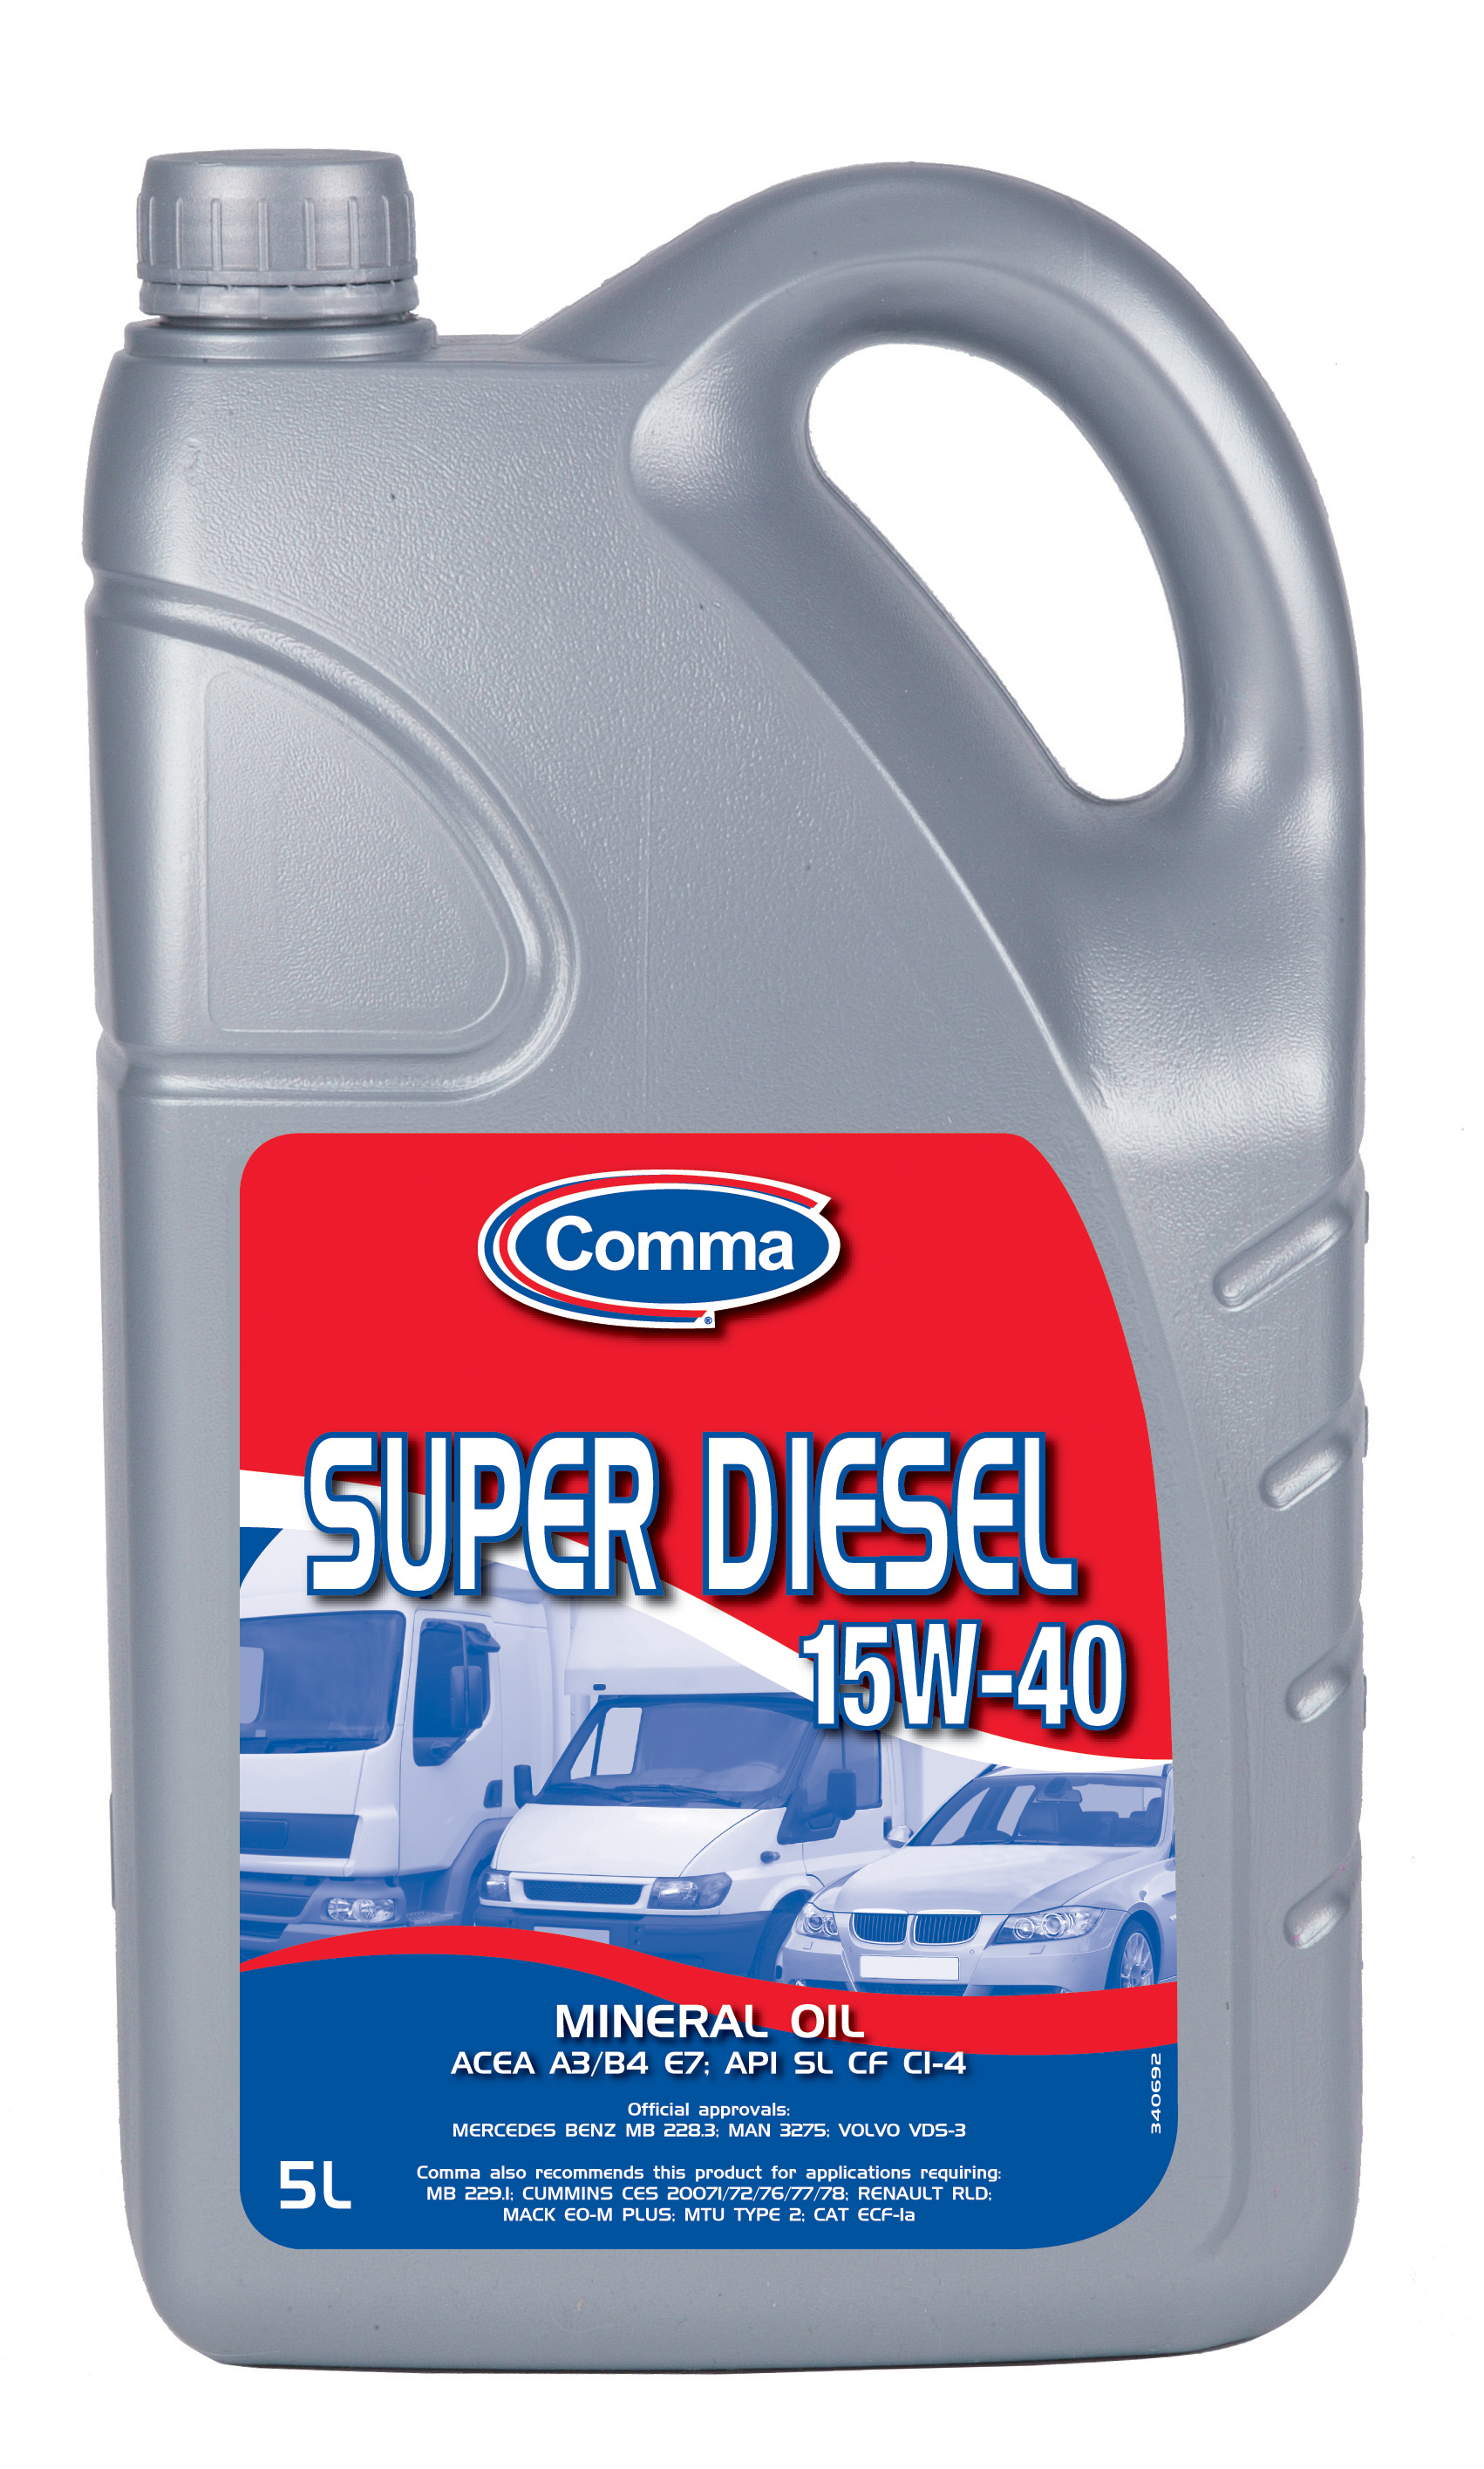 Comma Super Diesel Engine Mineral Mixed Fleet Motor Oil